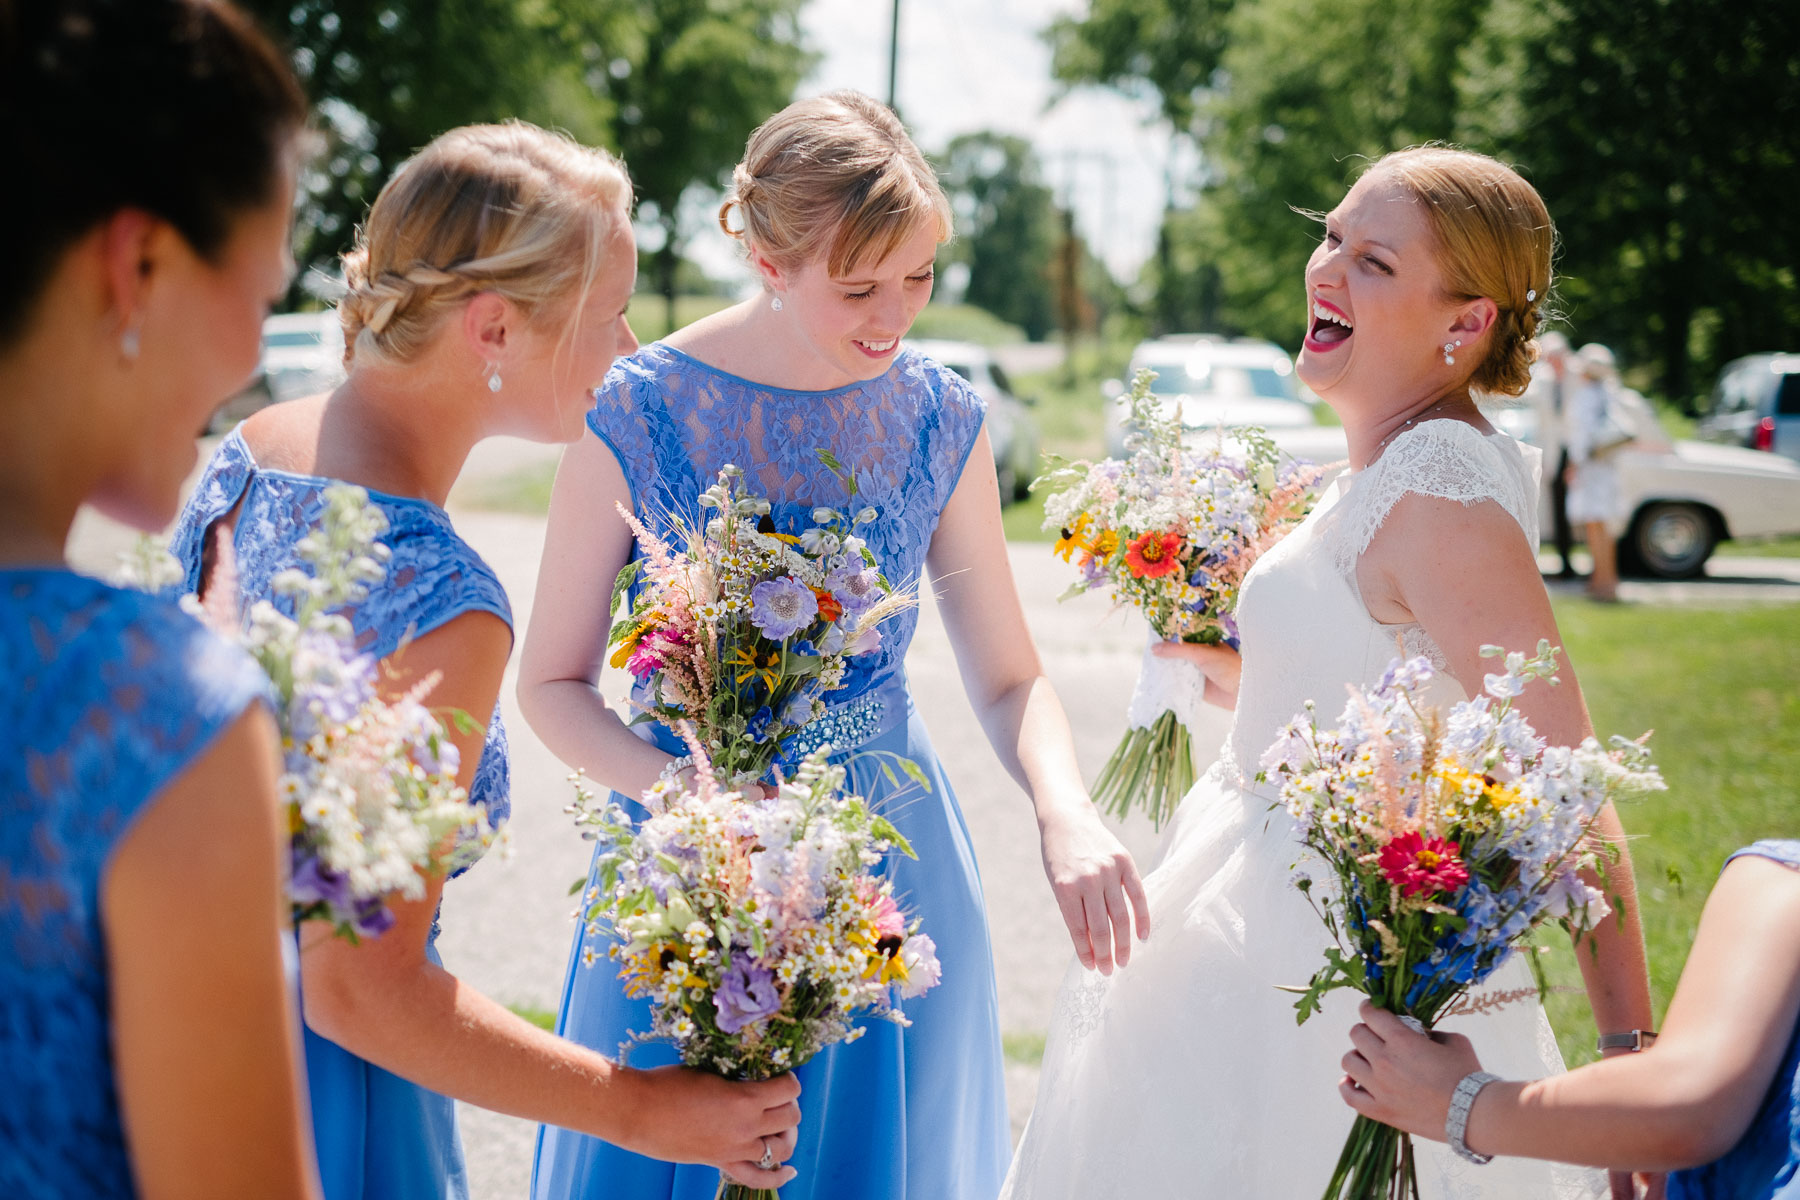 Bride laughs as bridesmaids examine her dress outside the church in this rural farm wedding.